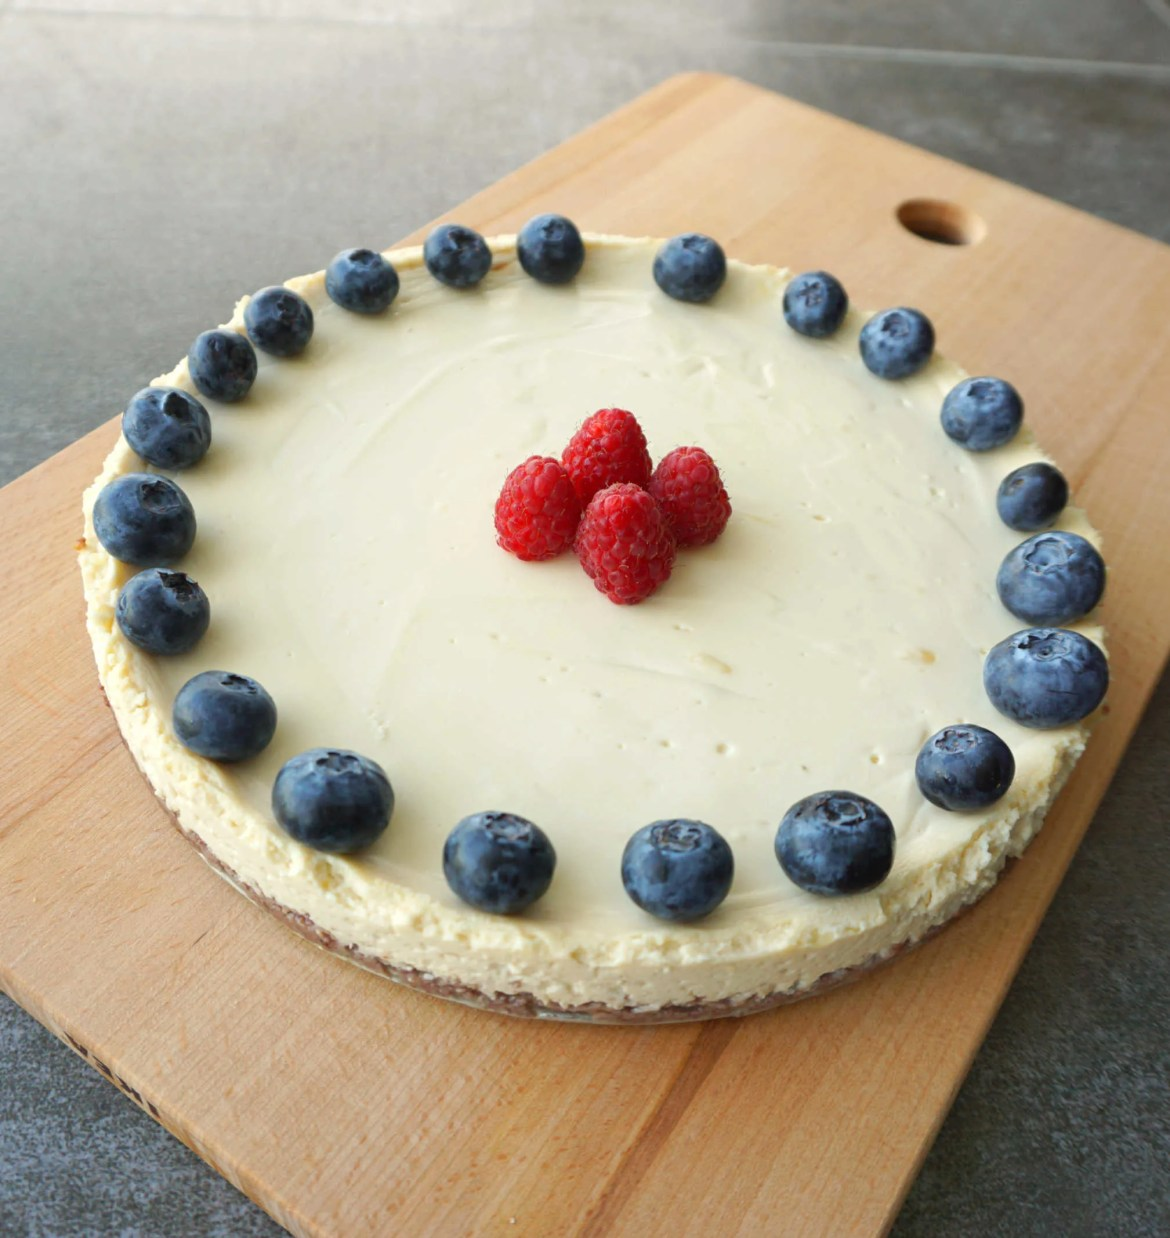 Healthy Heavenly Cheesecake recipe dessert by The Makeup Dummy